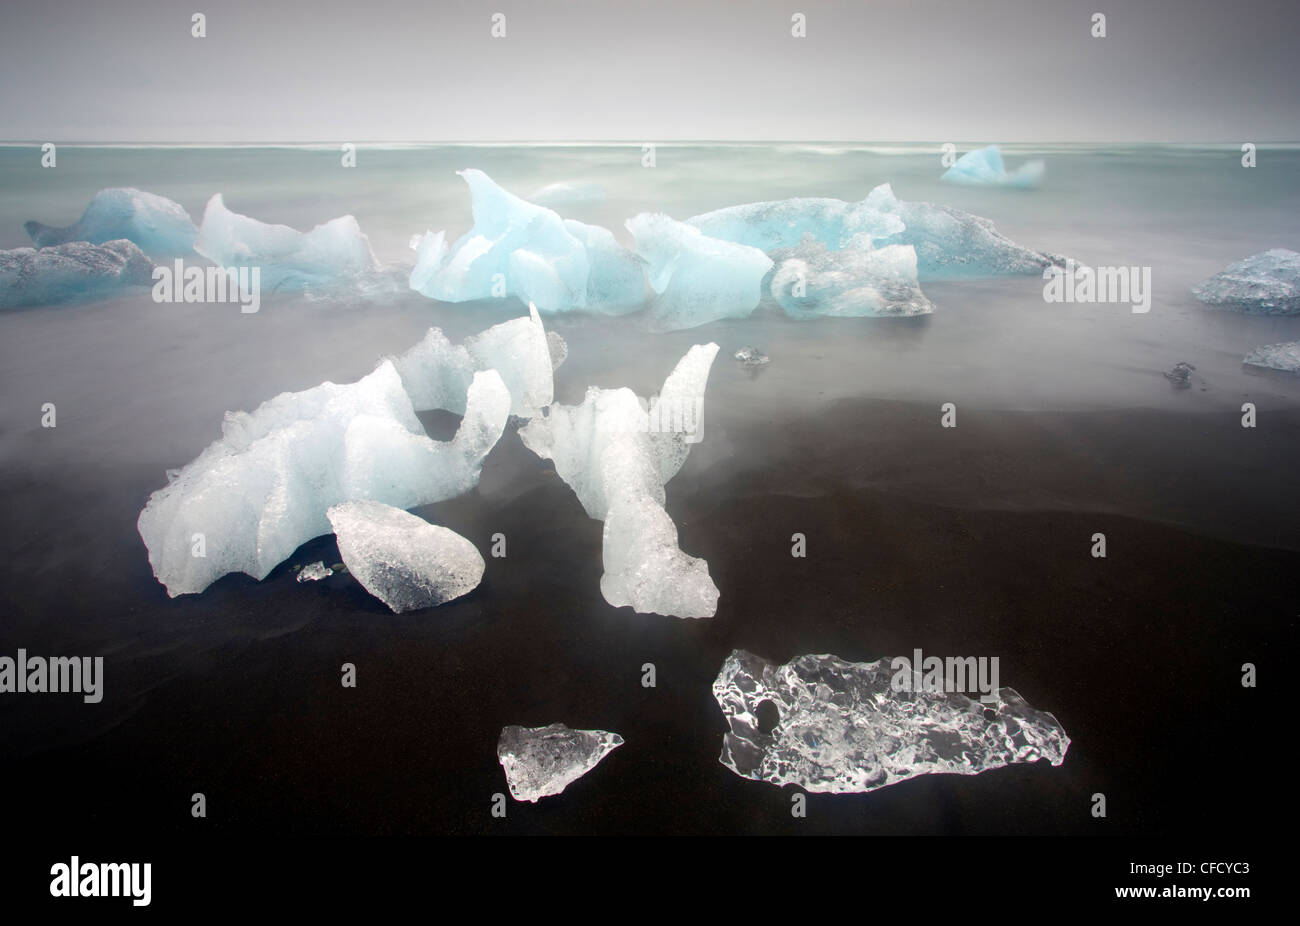 Icebergs from the Jokulsarlon glacial lagoon washed up on a nearby volcanic sand beach from the North Atlantic Ocean, - Stock Image